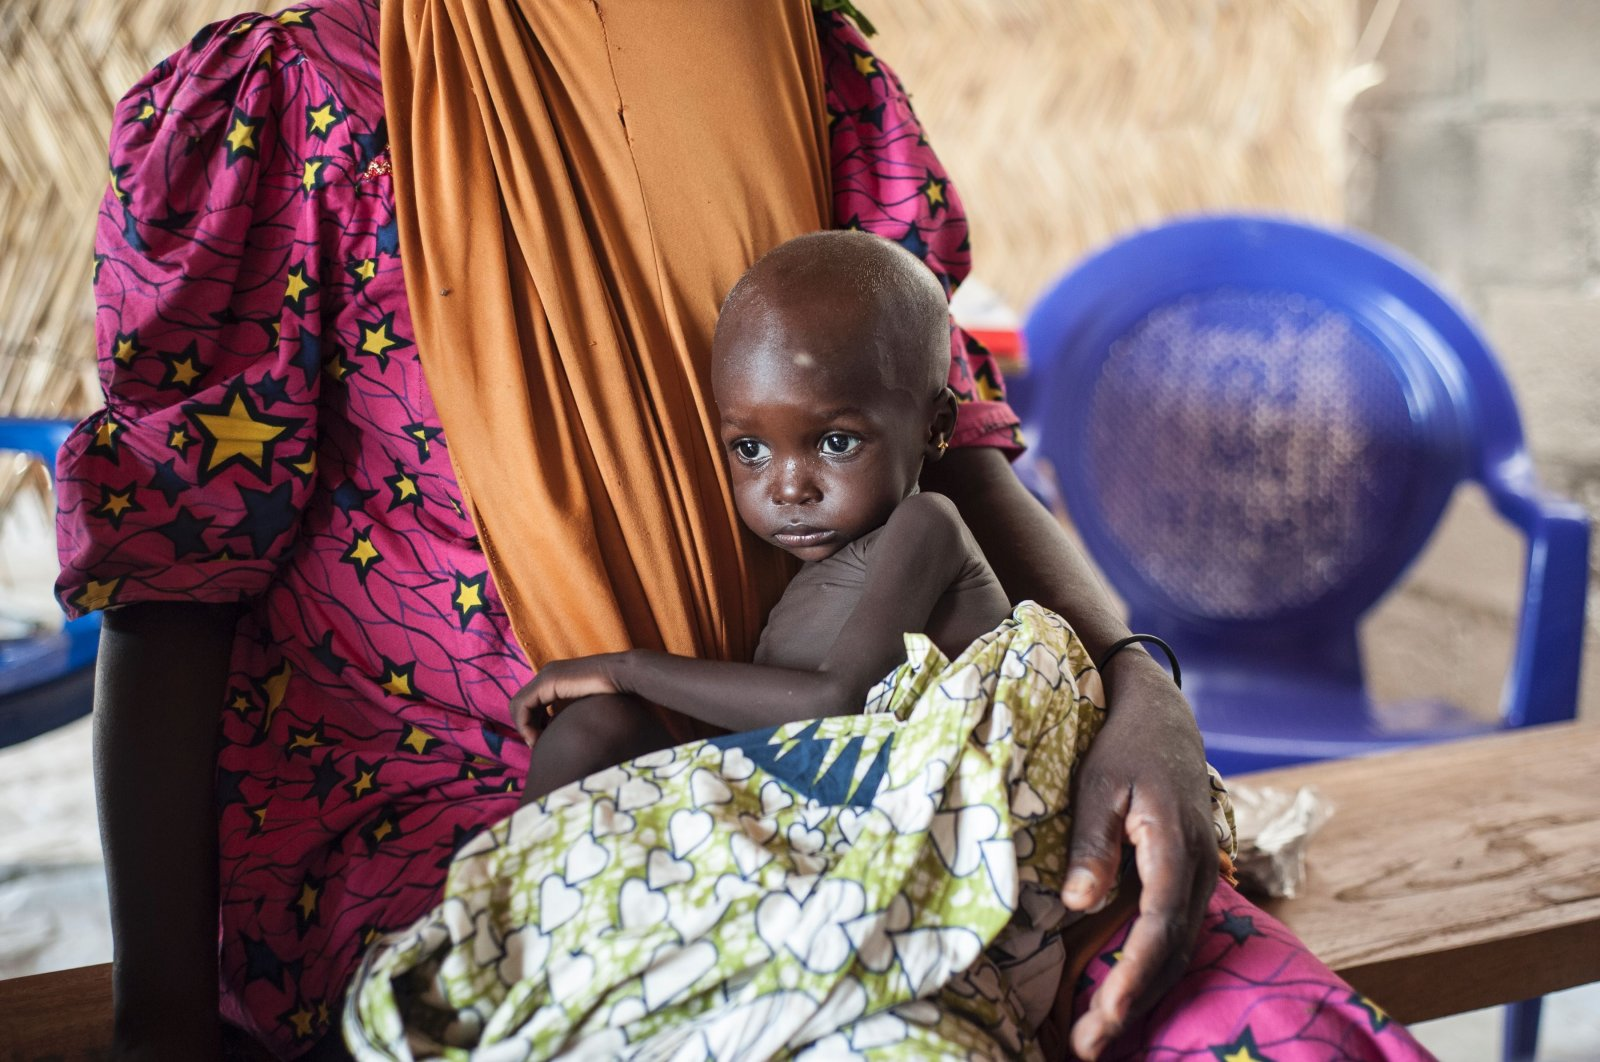 A young girl suffering from severe acute malnutrition sitting on her mother's lap, at one of the UNICEF nutrition clinics in the outskirts of Maiduguri capital of Borno State, northeastern Nigeria, June 30, 2016. (AFP Photo)